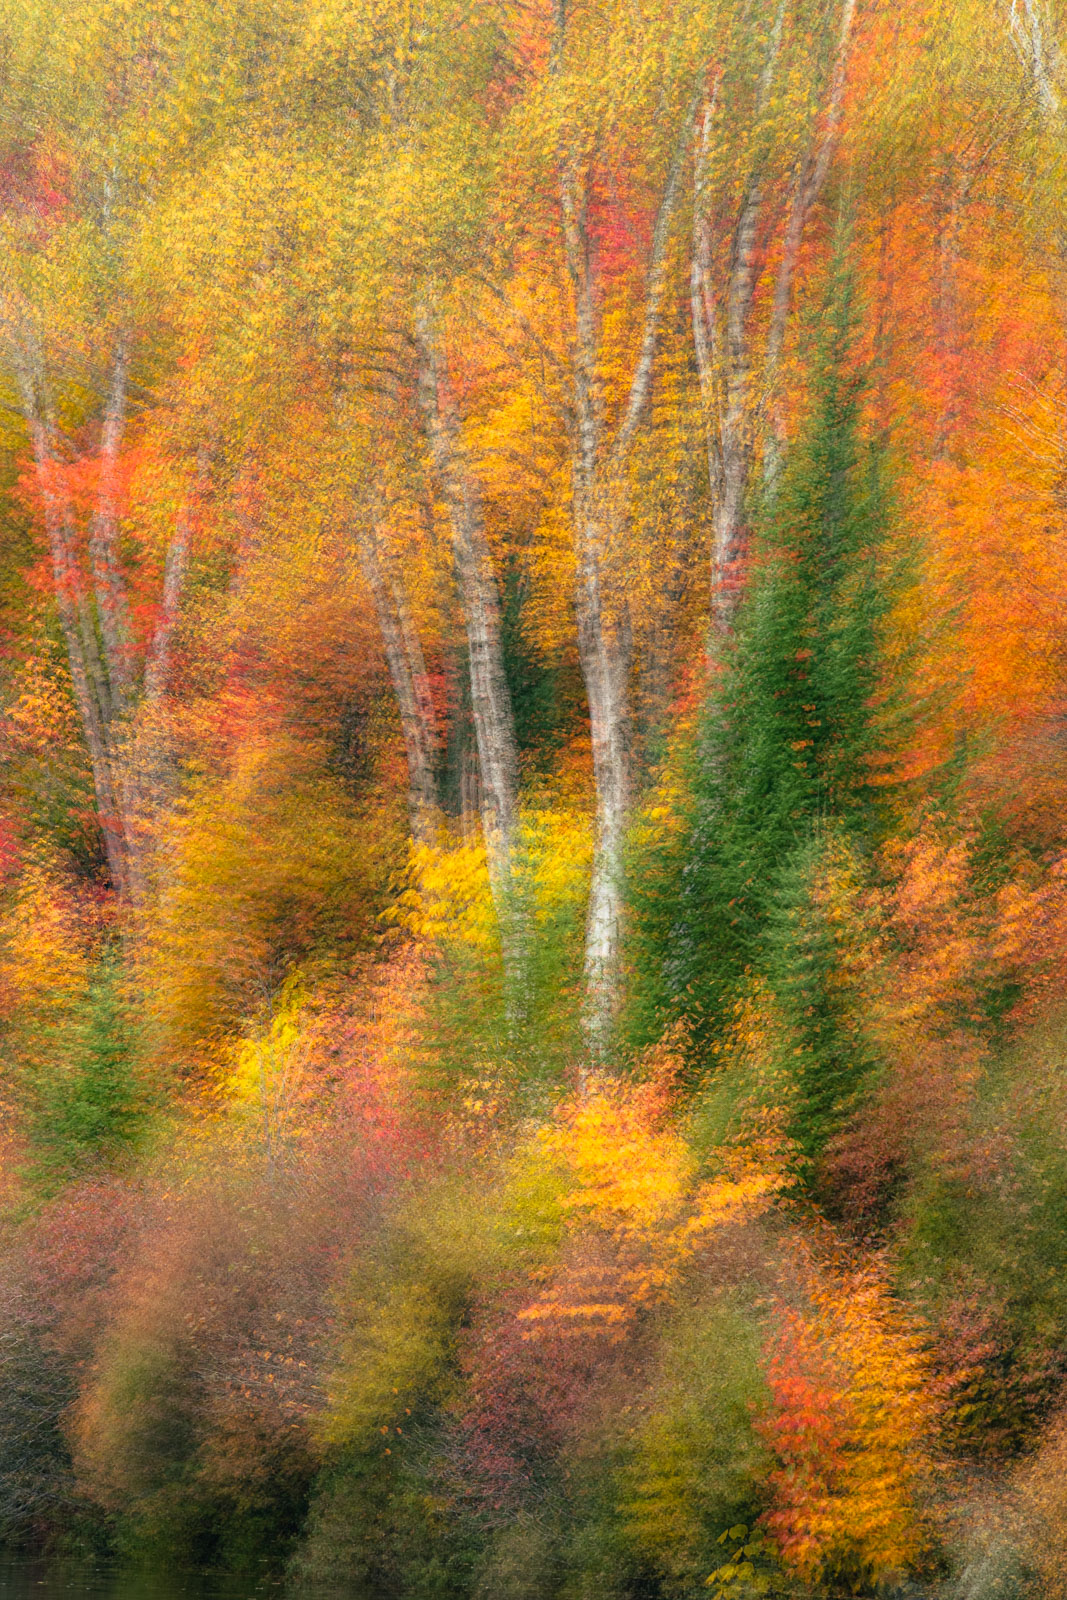 Abstract ICM (intentional camera movemnet) of autumn woodlands in Vermont's Northeast Kingdom.